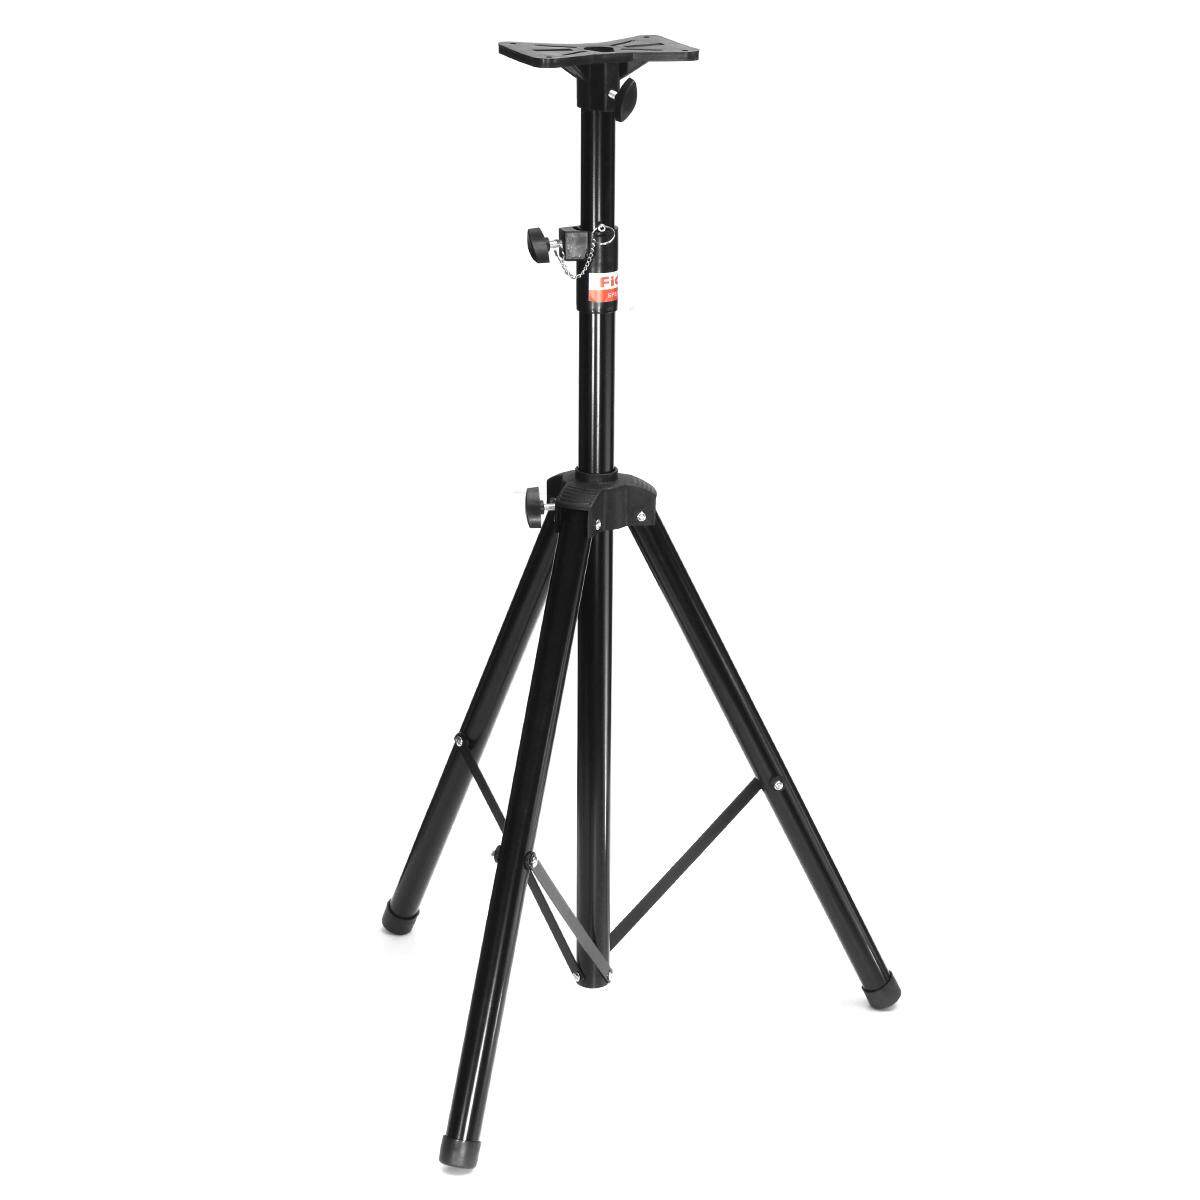 60kg/132lbs Black Tripod DJ PA Speaker Stands Steel Frame Universal Adjustable - intl